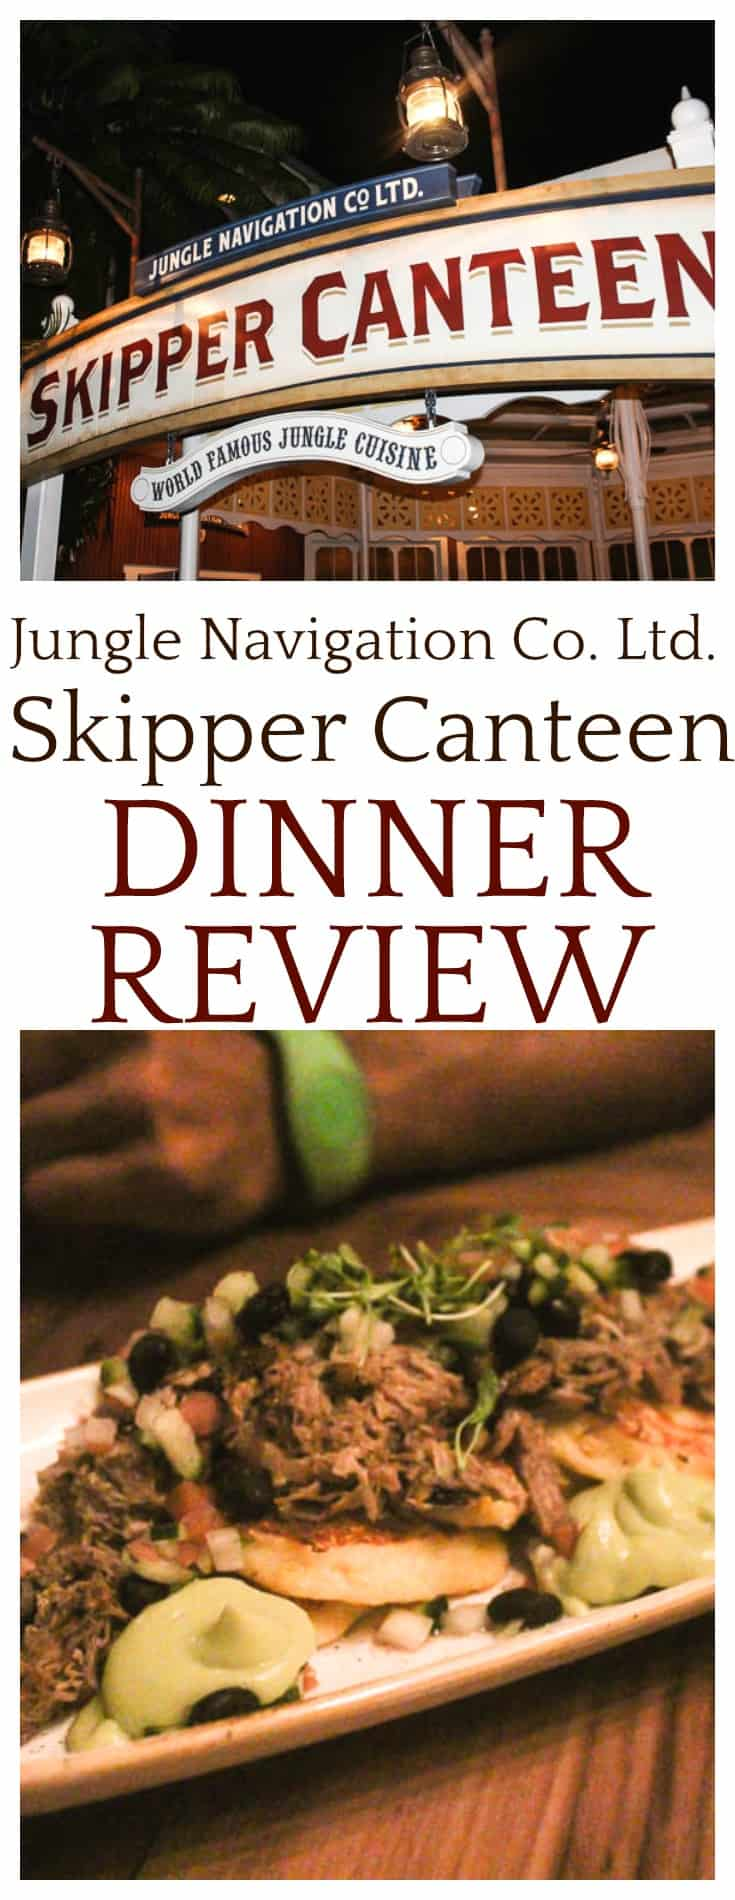 This Jungle Navigation Co. Ltd. Skipper Canteen dinner review is based on my experience when visiting the restaurant in November 2017 with my family. This restaurant can be found at Walt Disney World inside the Magic Kingdom Park.